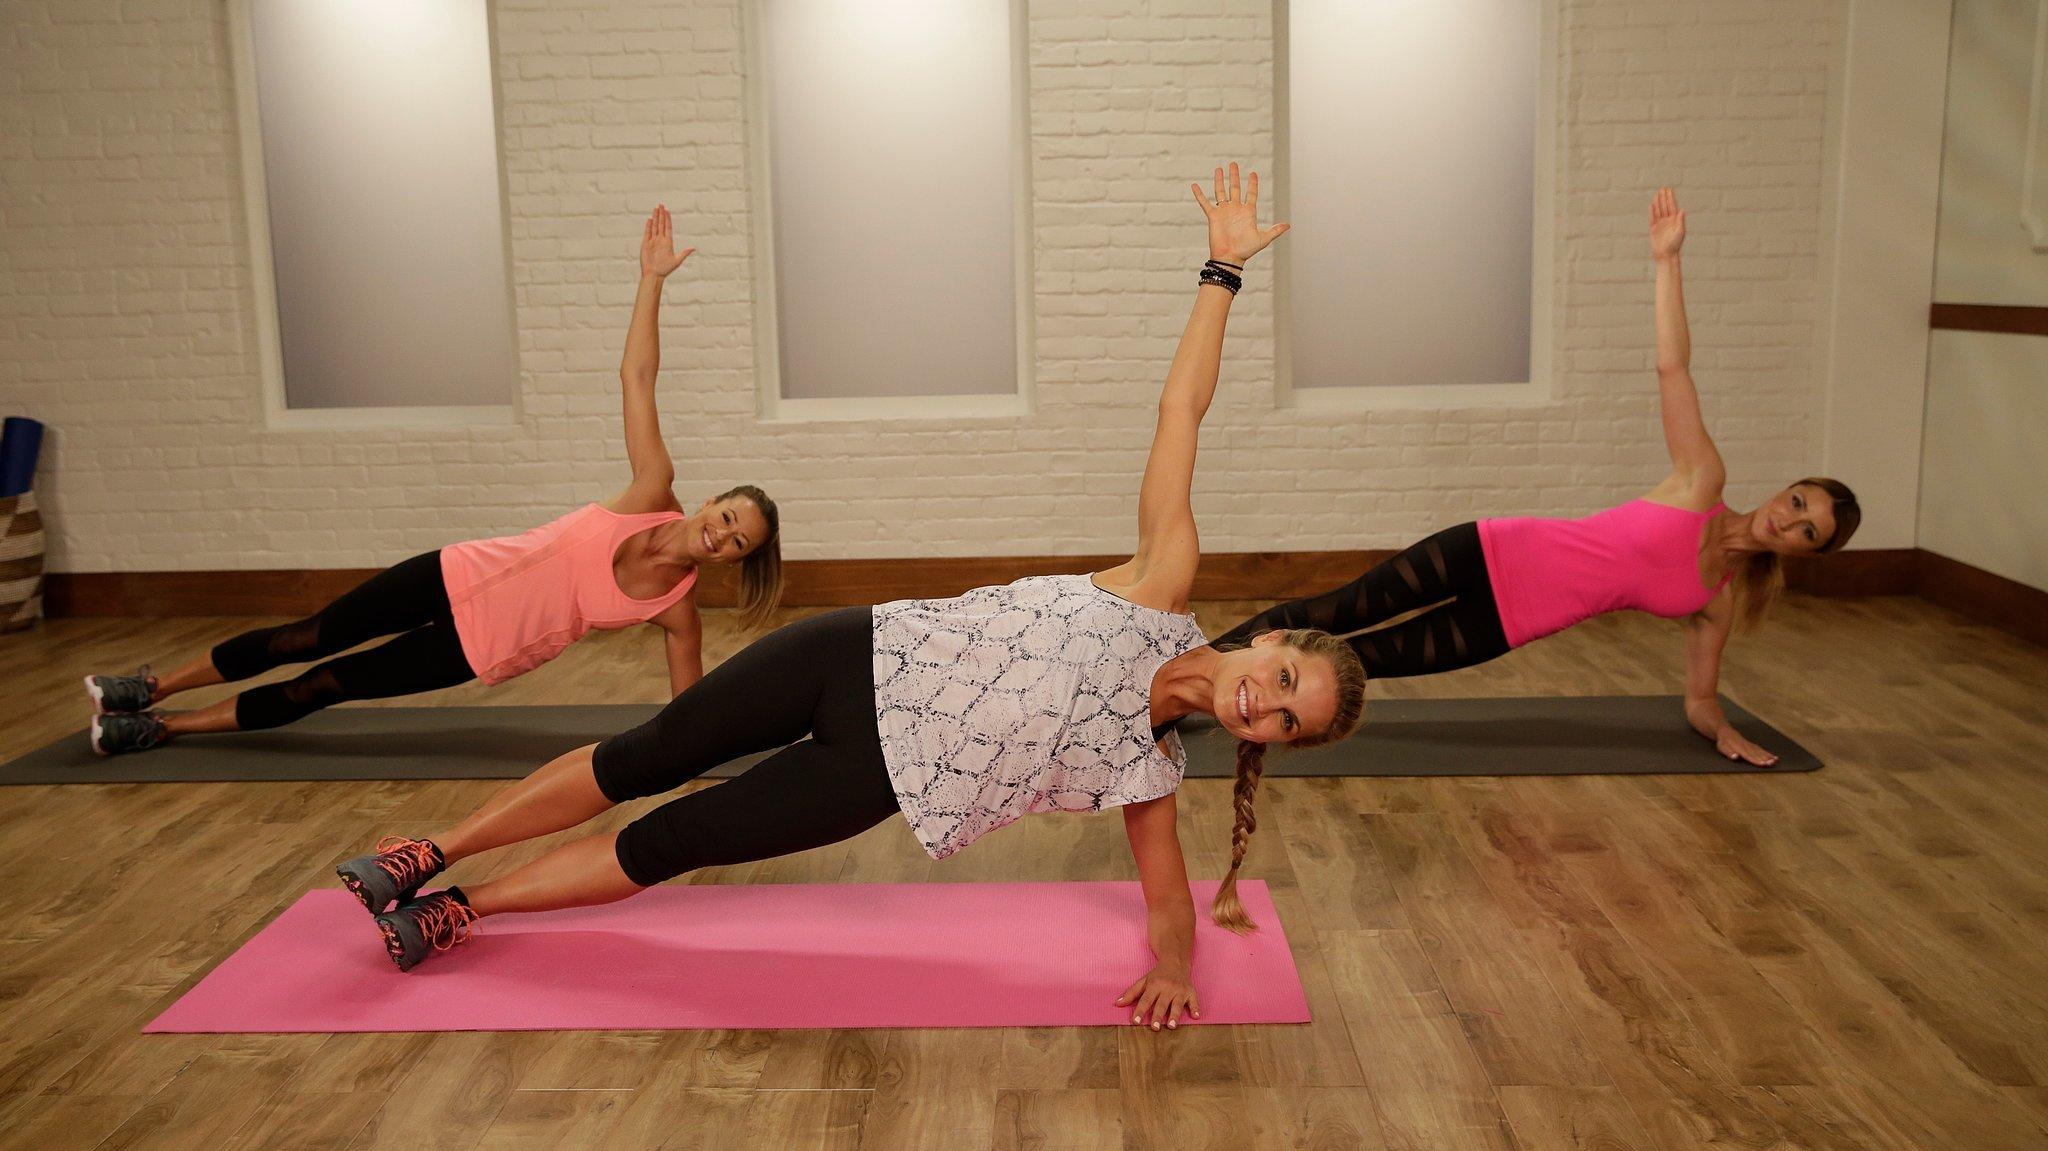 Snap Get A Victoria S Secret Model Body Workout Play Hard Photos On 13 Killer Circuit Workouts You Can Do At Home Minqcom Work Out Like An Angel With This No Equipment Video